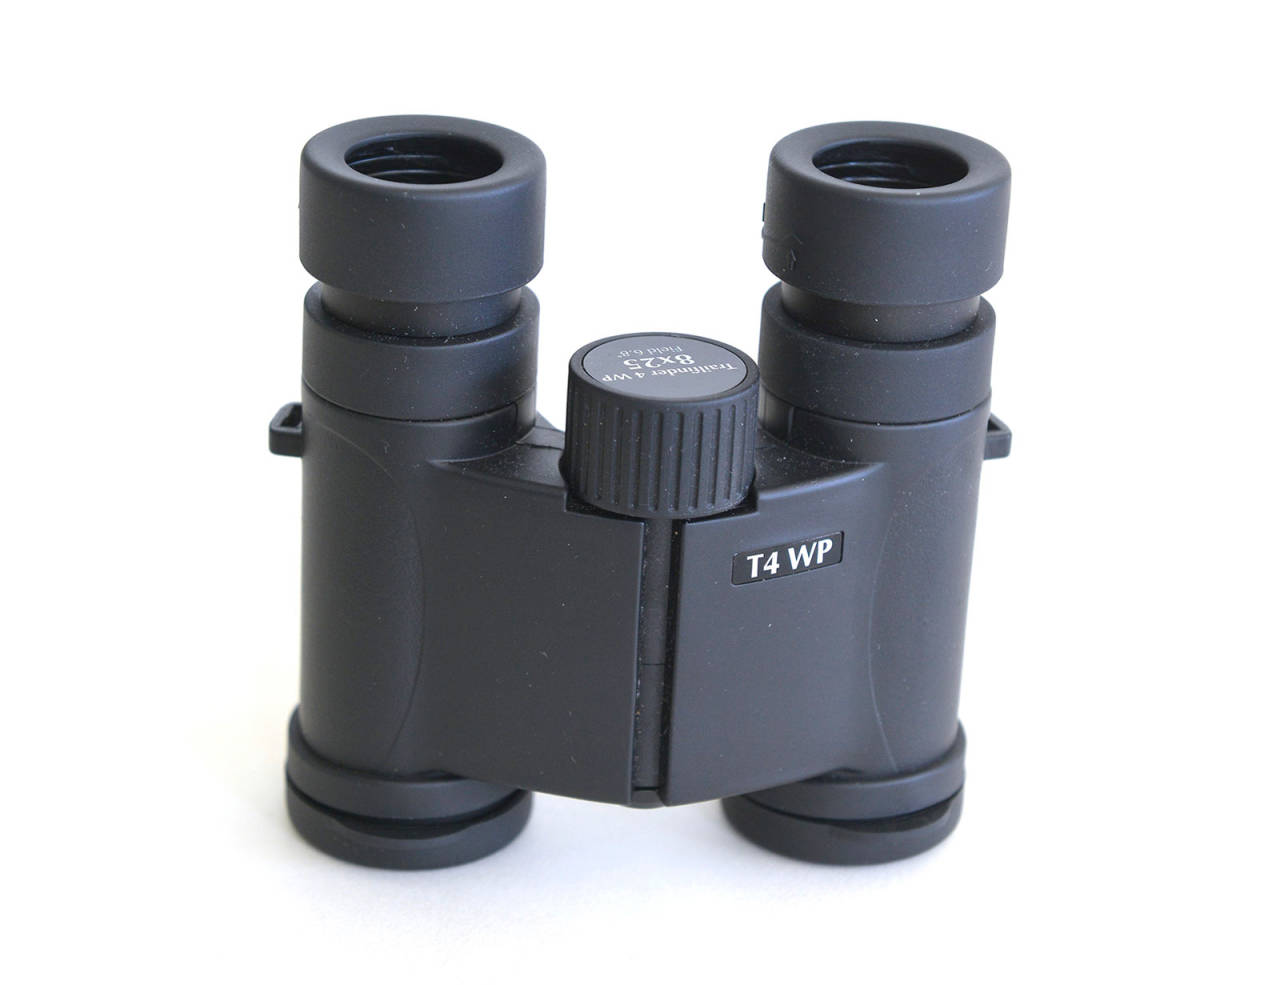 Opticron Trailfinder 4 WP 8x25